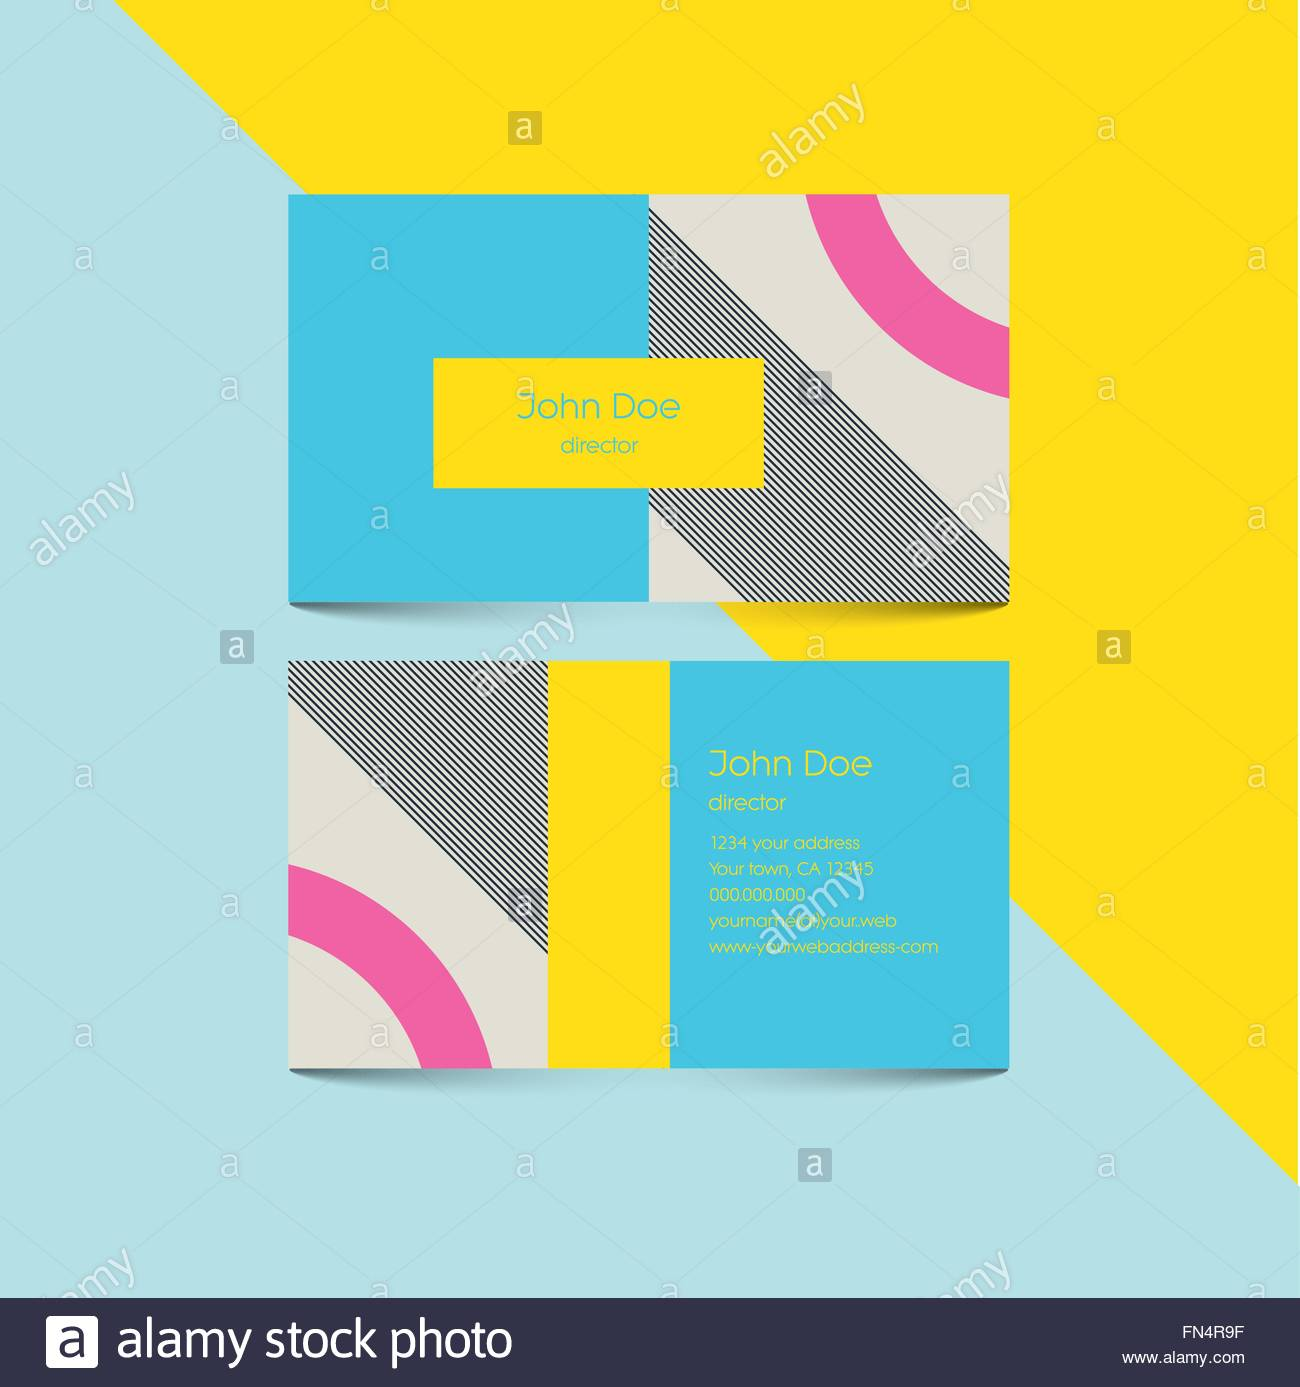 Business card template with abstract retro 80s background ...